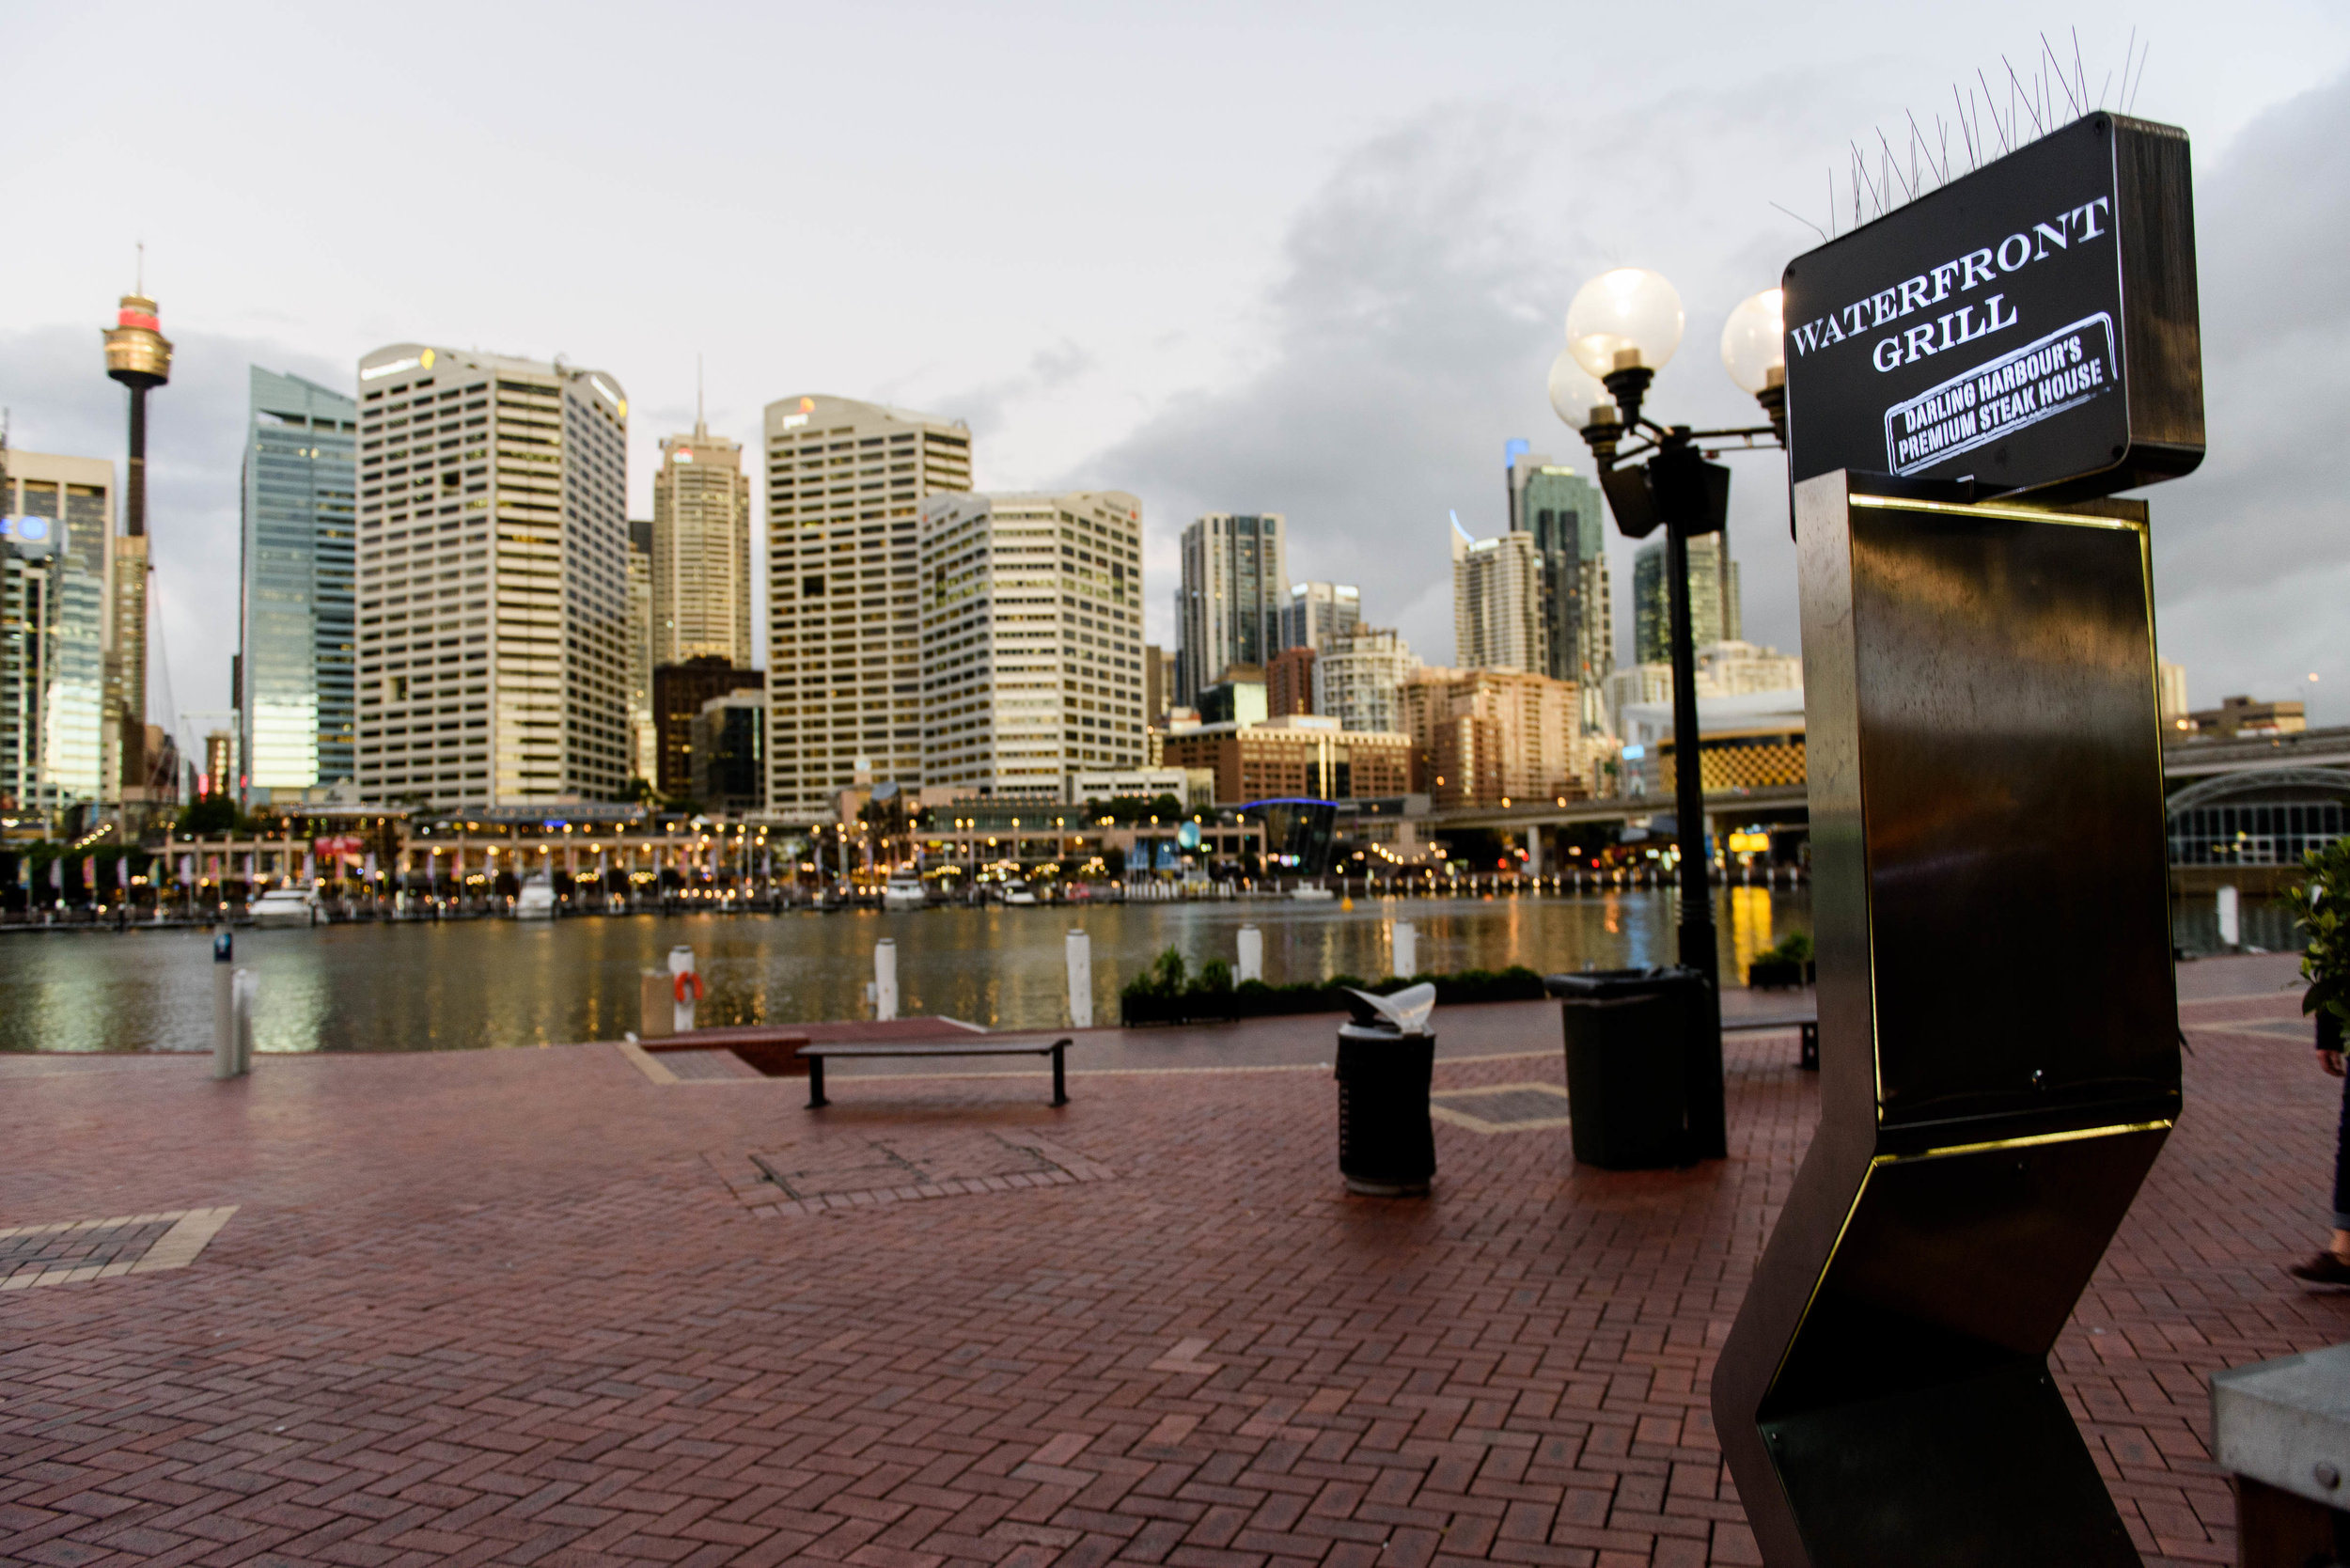 Waterfront-Grill-Gallery-6.jpg